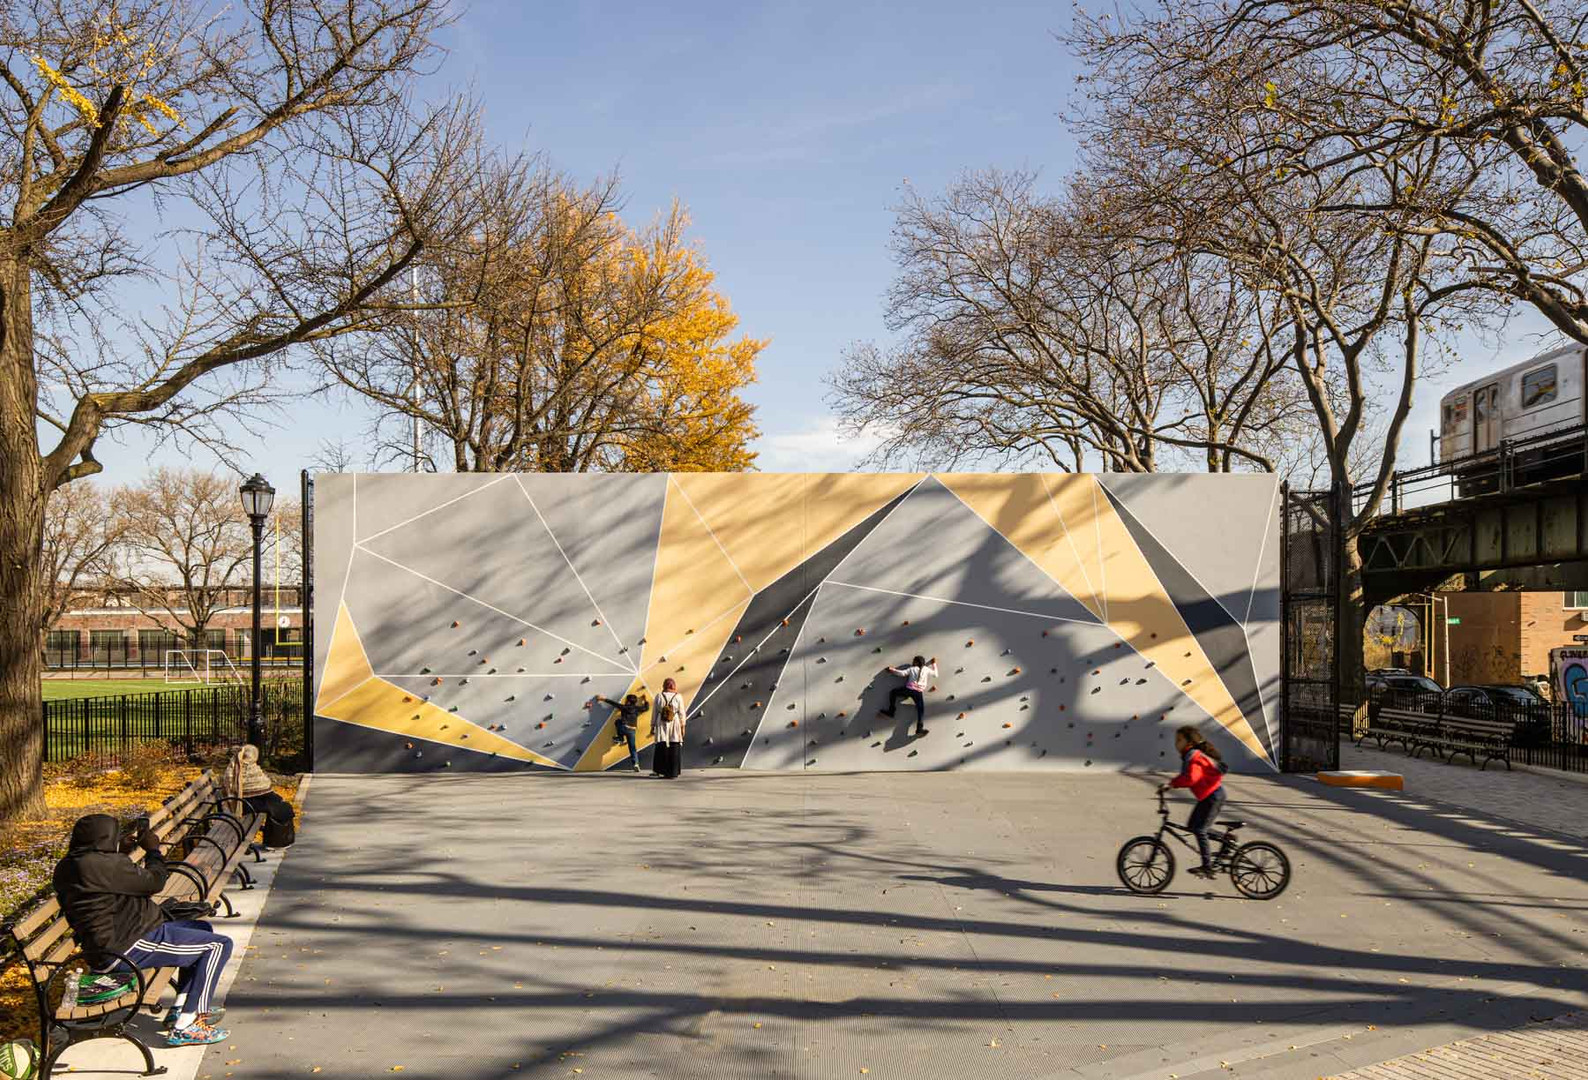 A climbing wall with geometric shapes offer a unique way to exercise on a repurposed handball court.